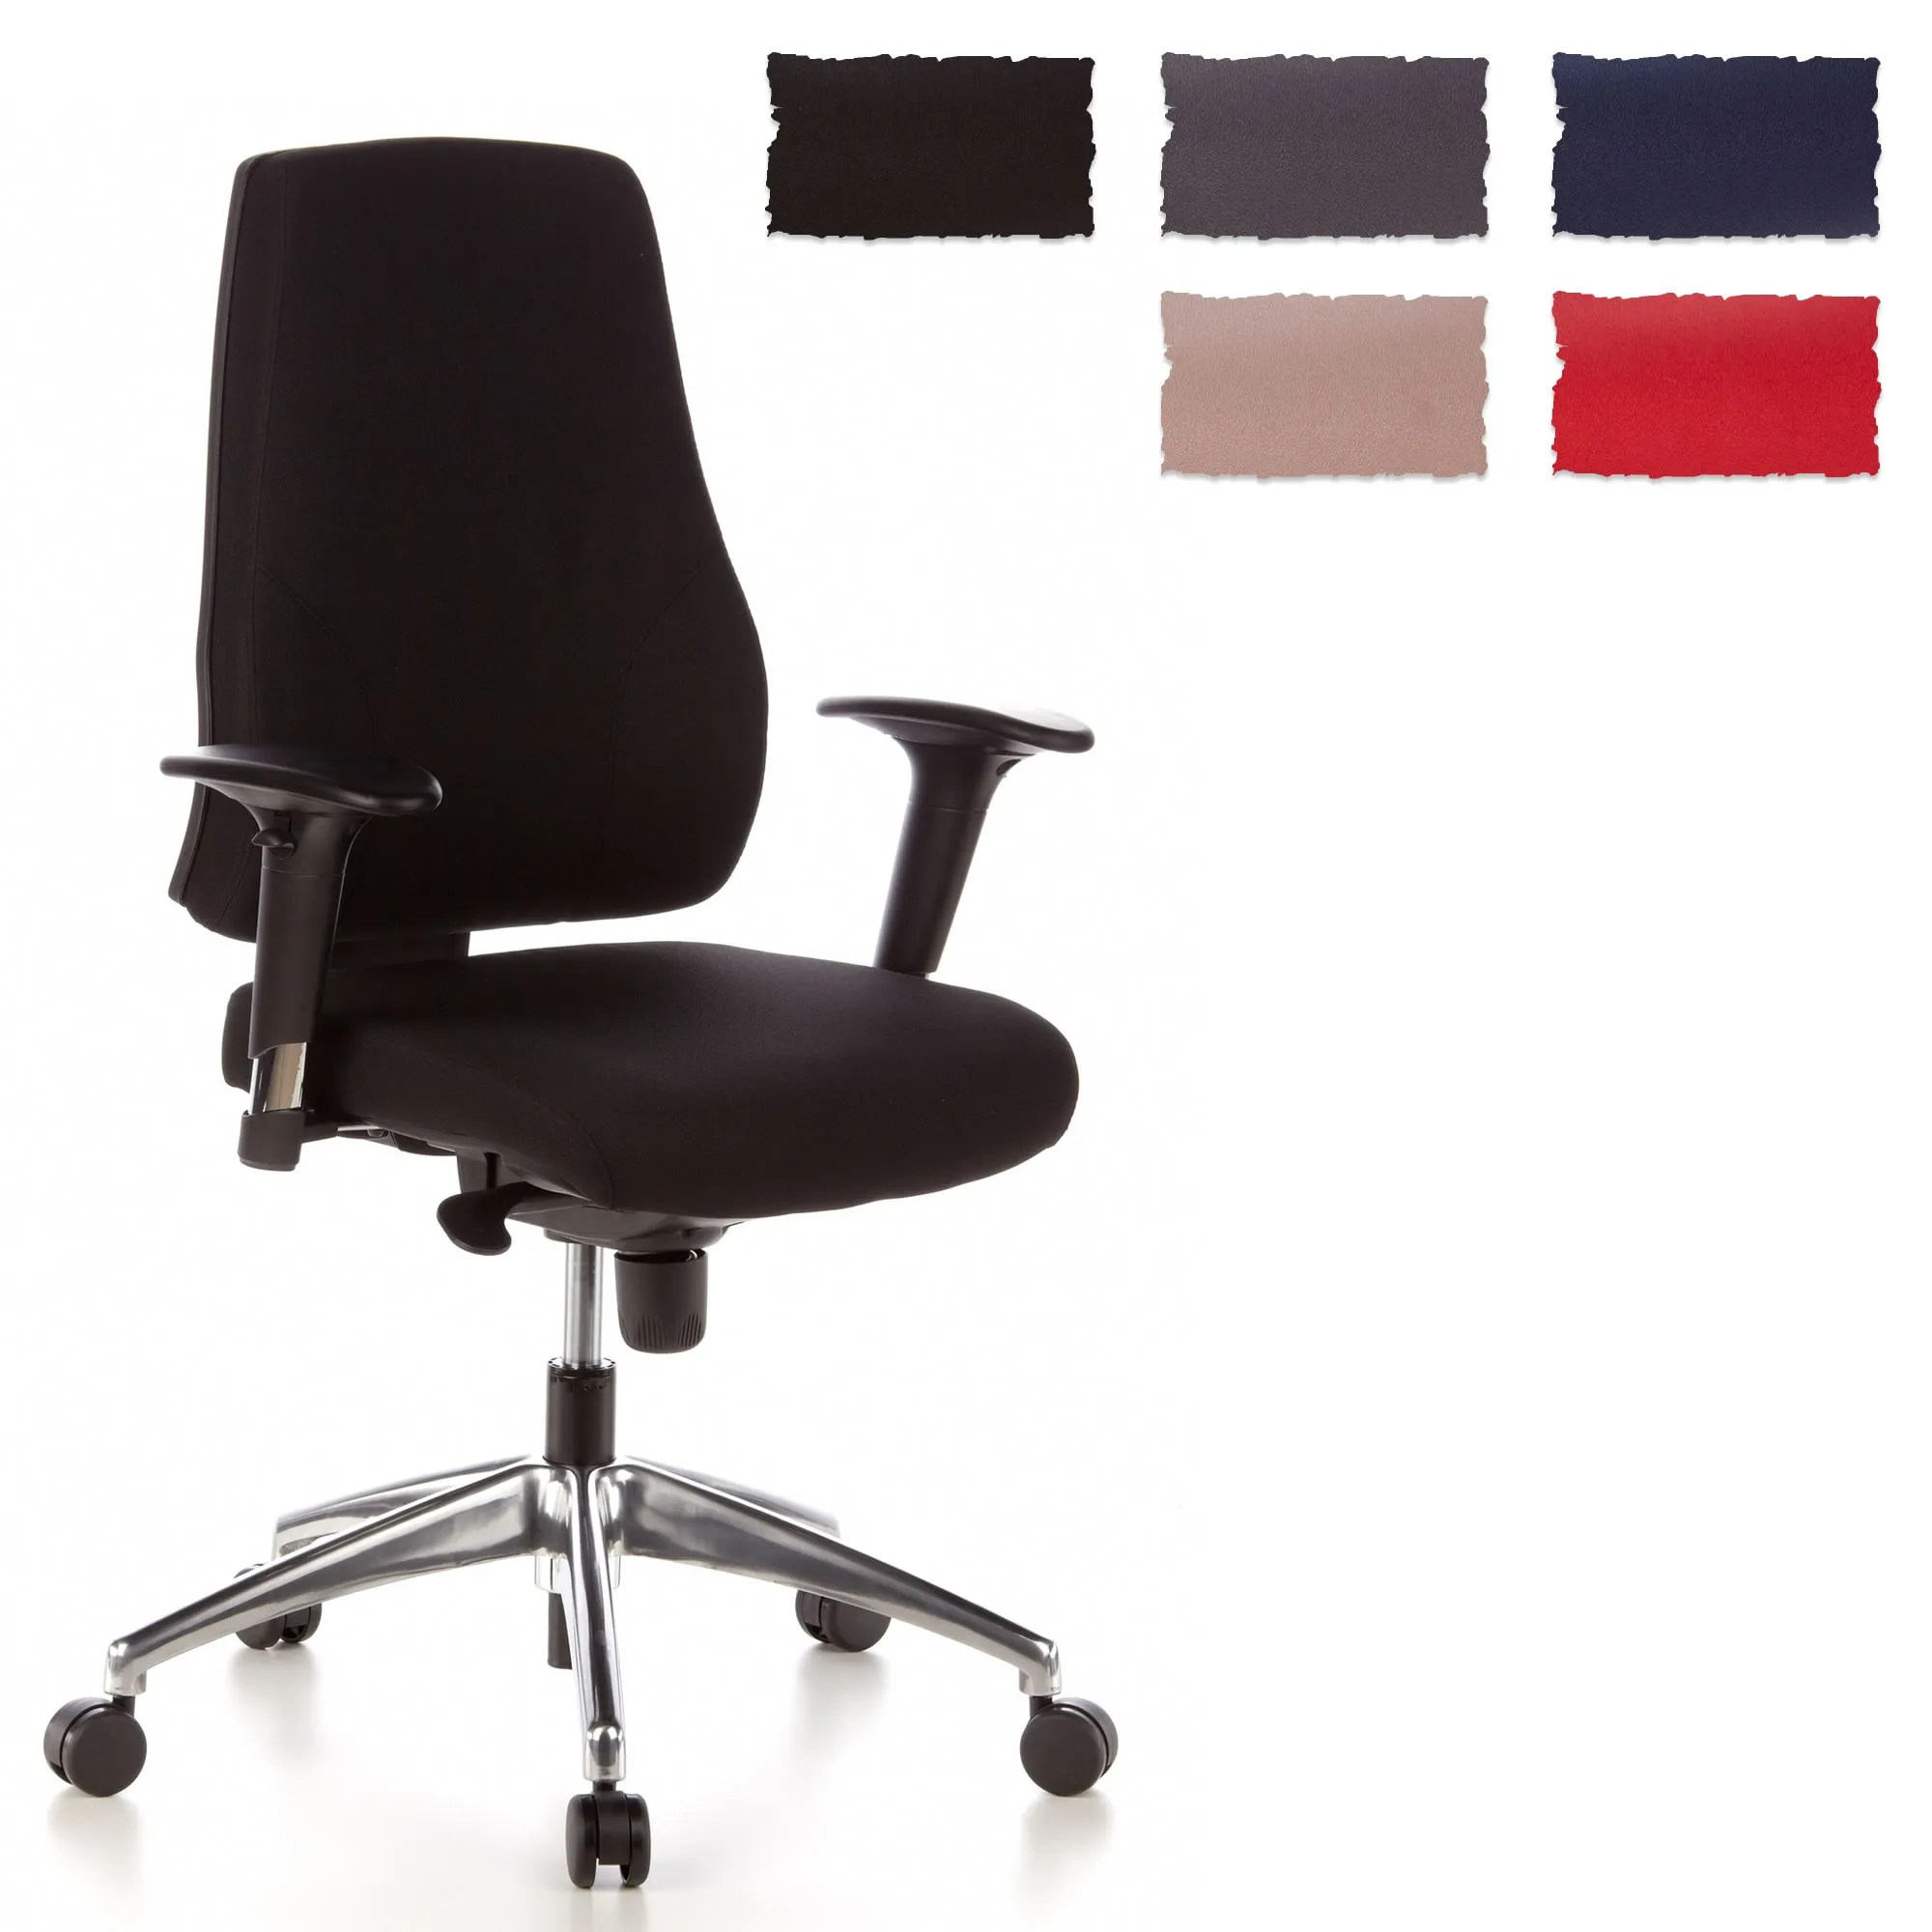 Cloth Covered Office Chairs Swivel Office Chair Reclining Seat Ergonomic Desk Pro Tec